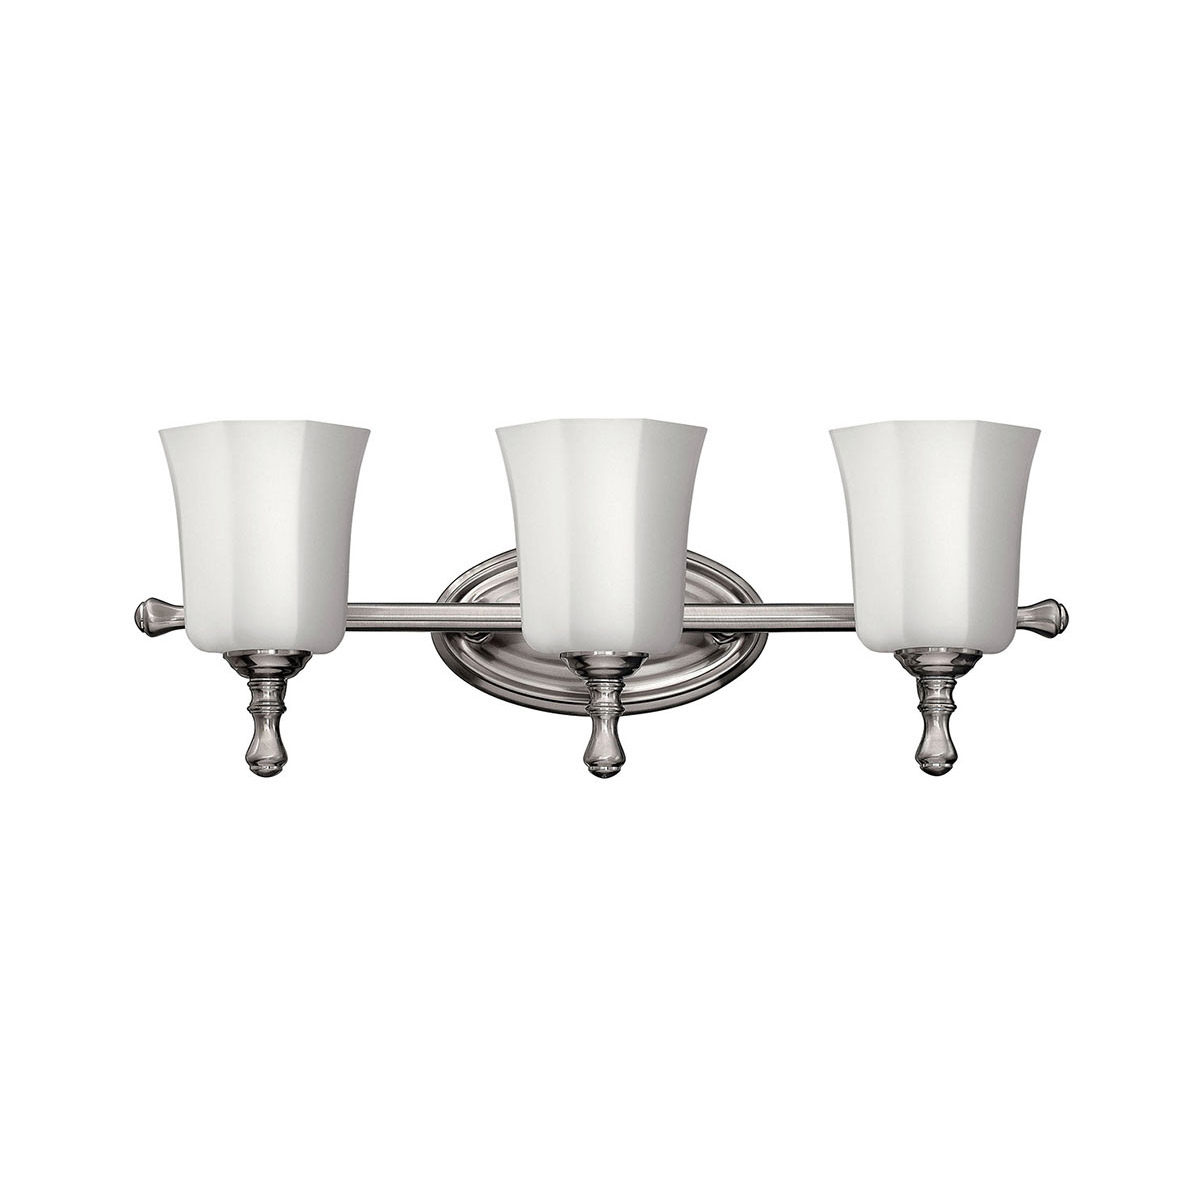 hinkley lighting 5013bn shelly bathroom vanity light brushed nickel 640665501315 ebay. Black Bedroom Furniture Sets. Home Design Ideas